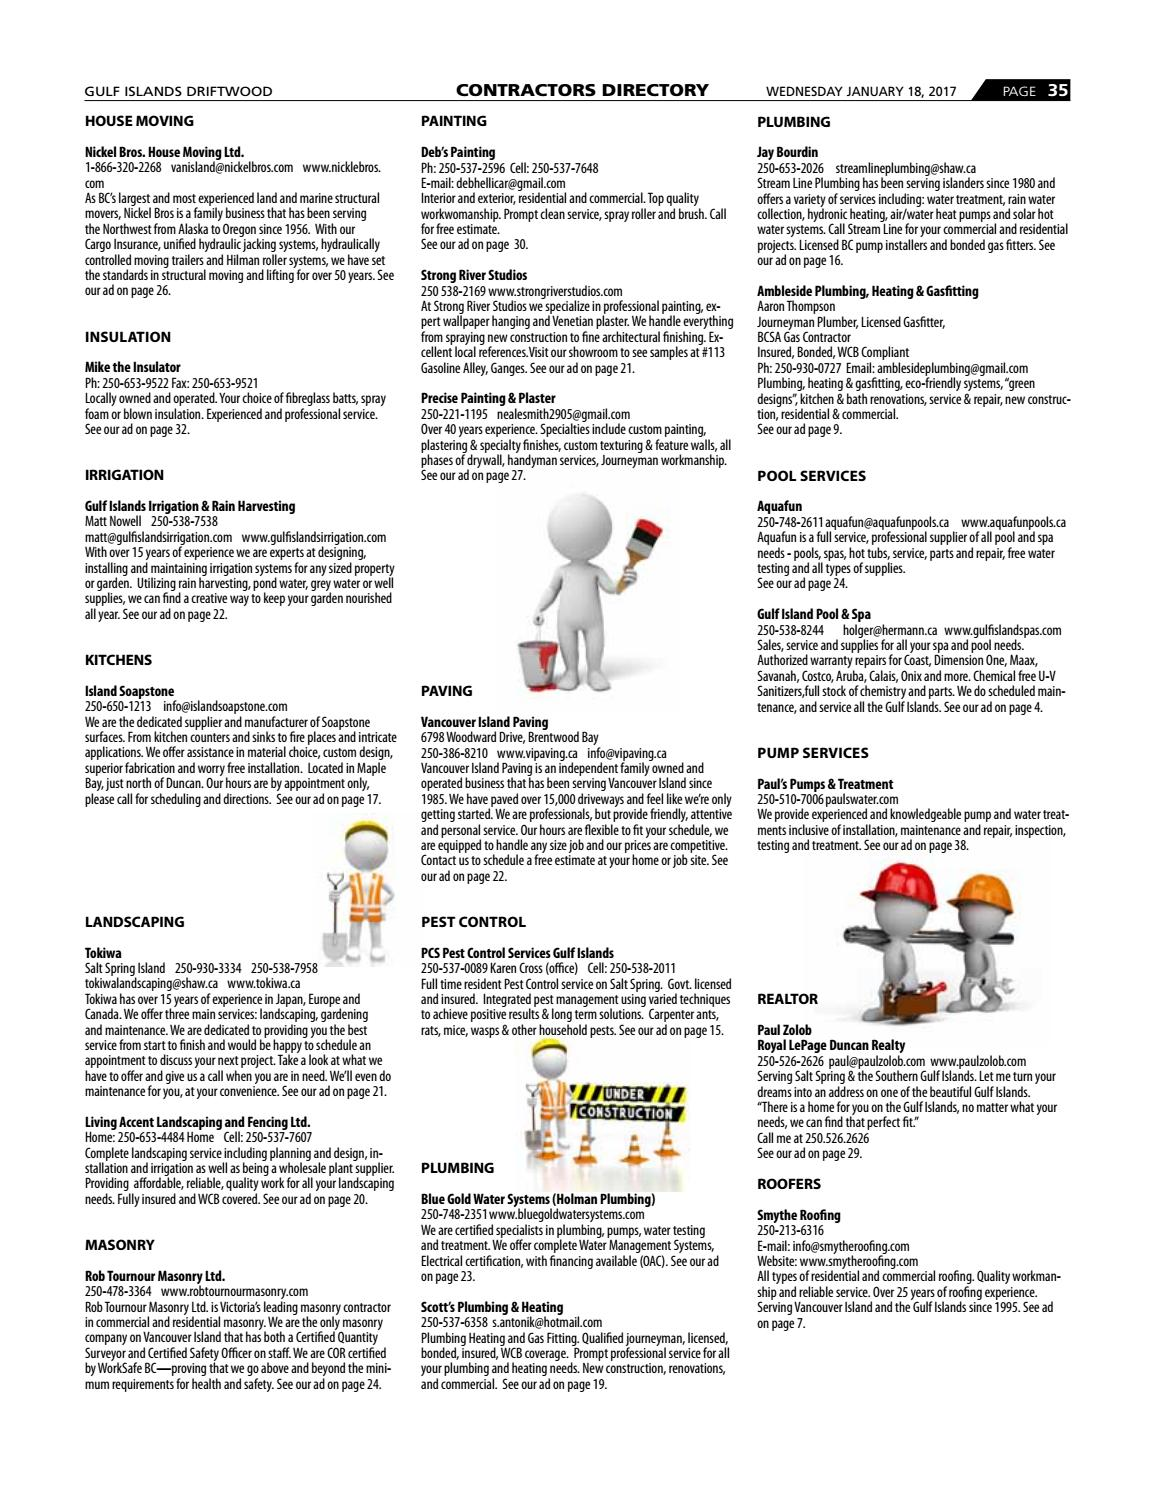 Contractors Directory 2017 By Gulf Islands Driftwood Publishing Issuu